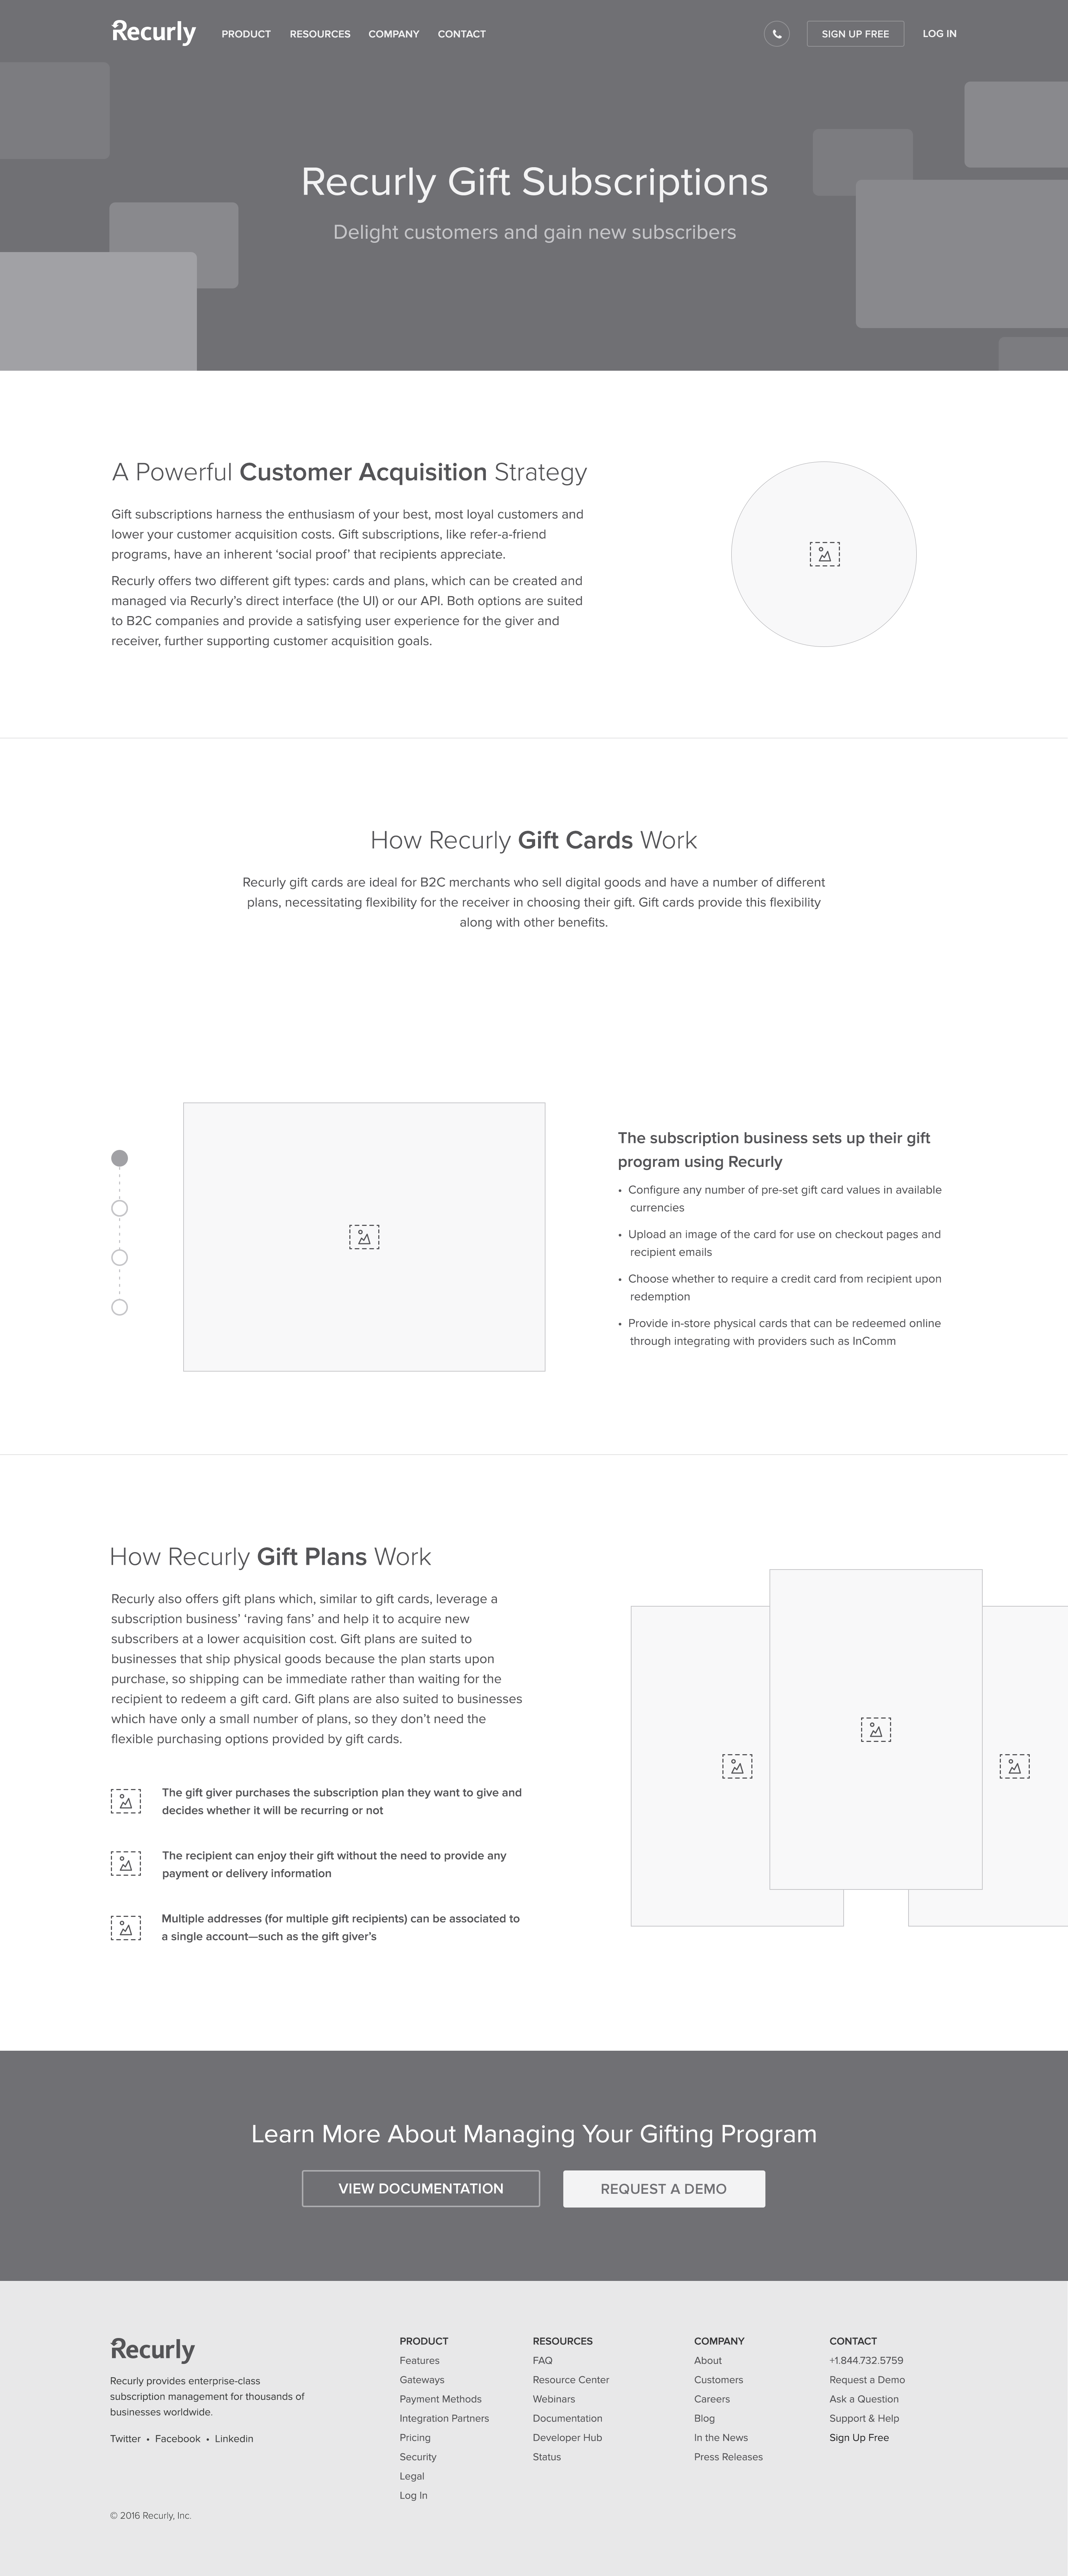 Recurly giftsubscriptions wireframes v1